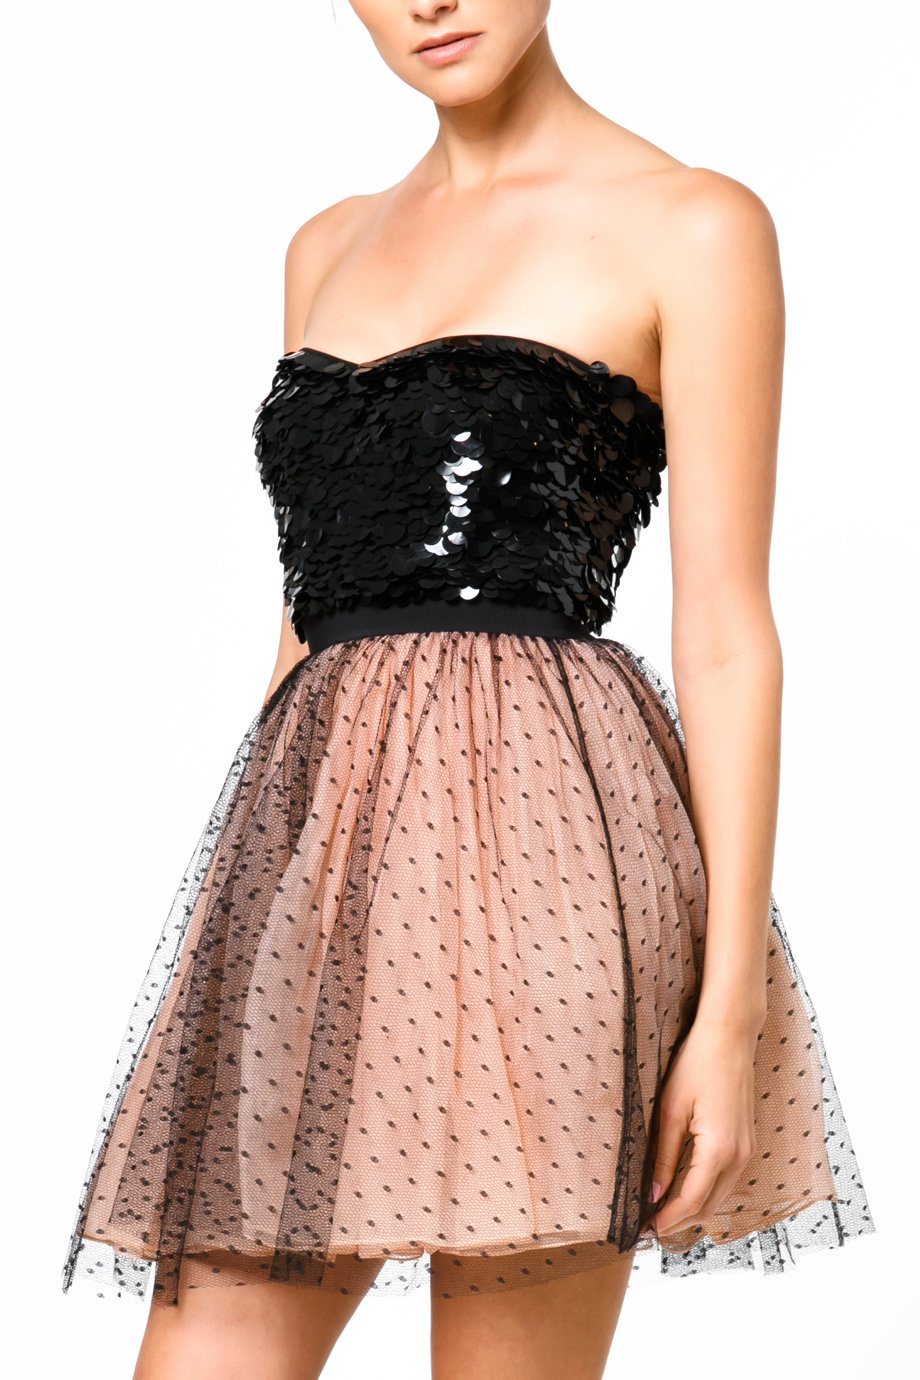 Red Valentino Nude Black Strapless Polka Dot Tule Cocktail Dress